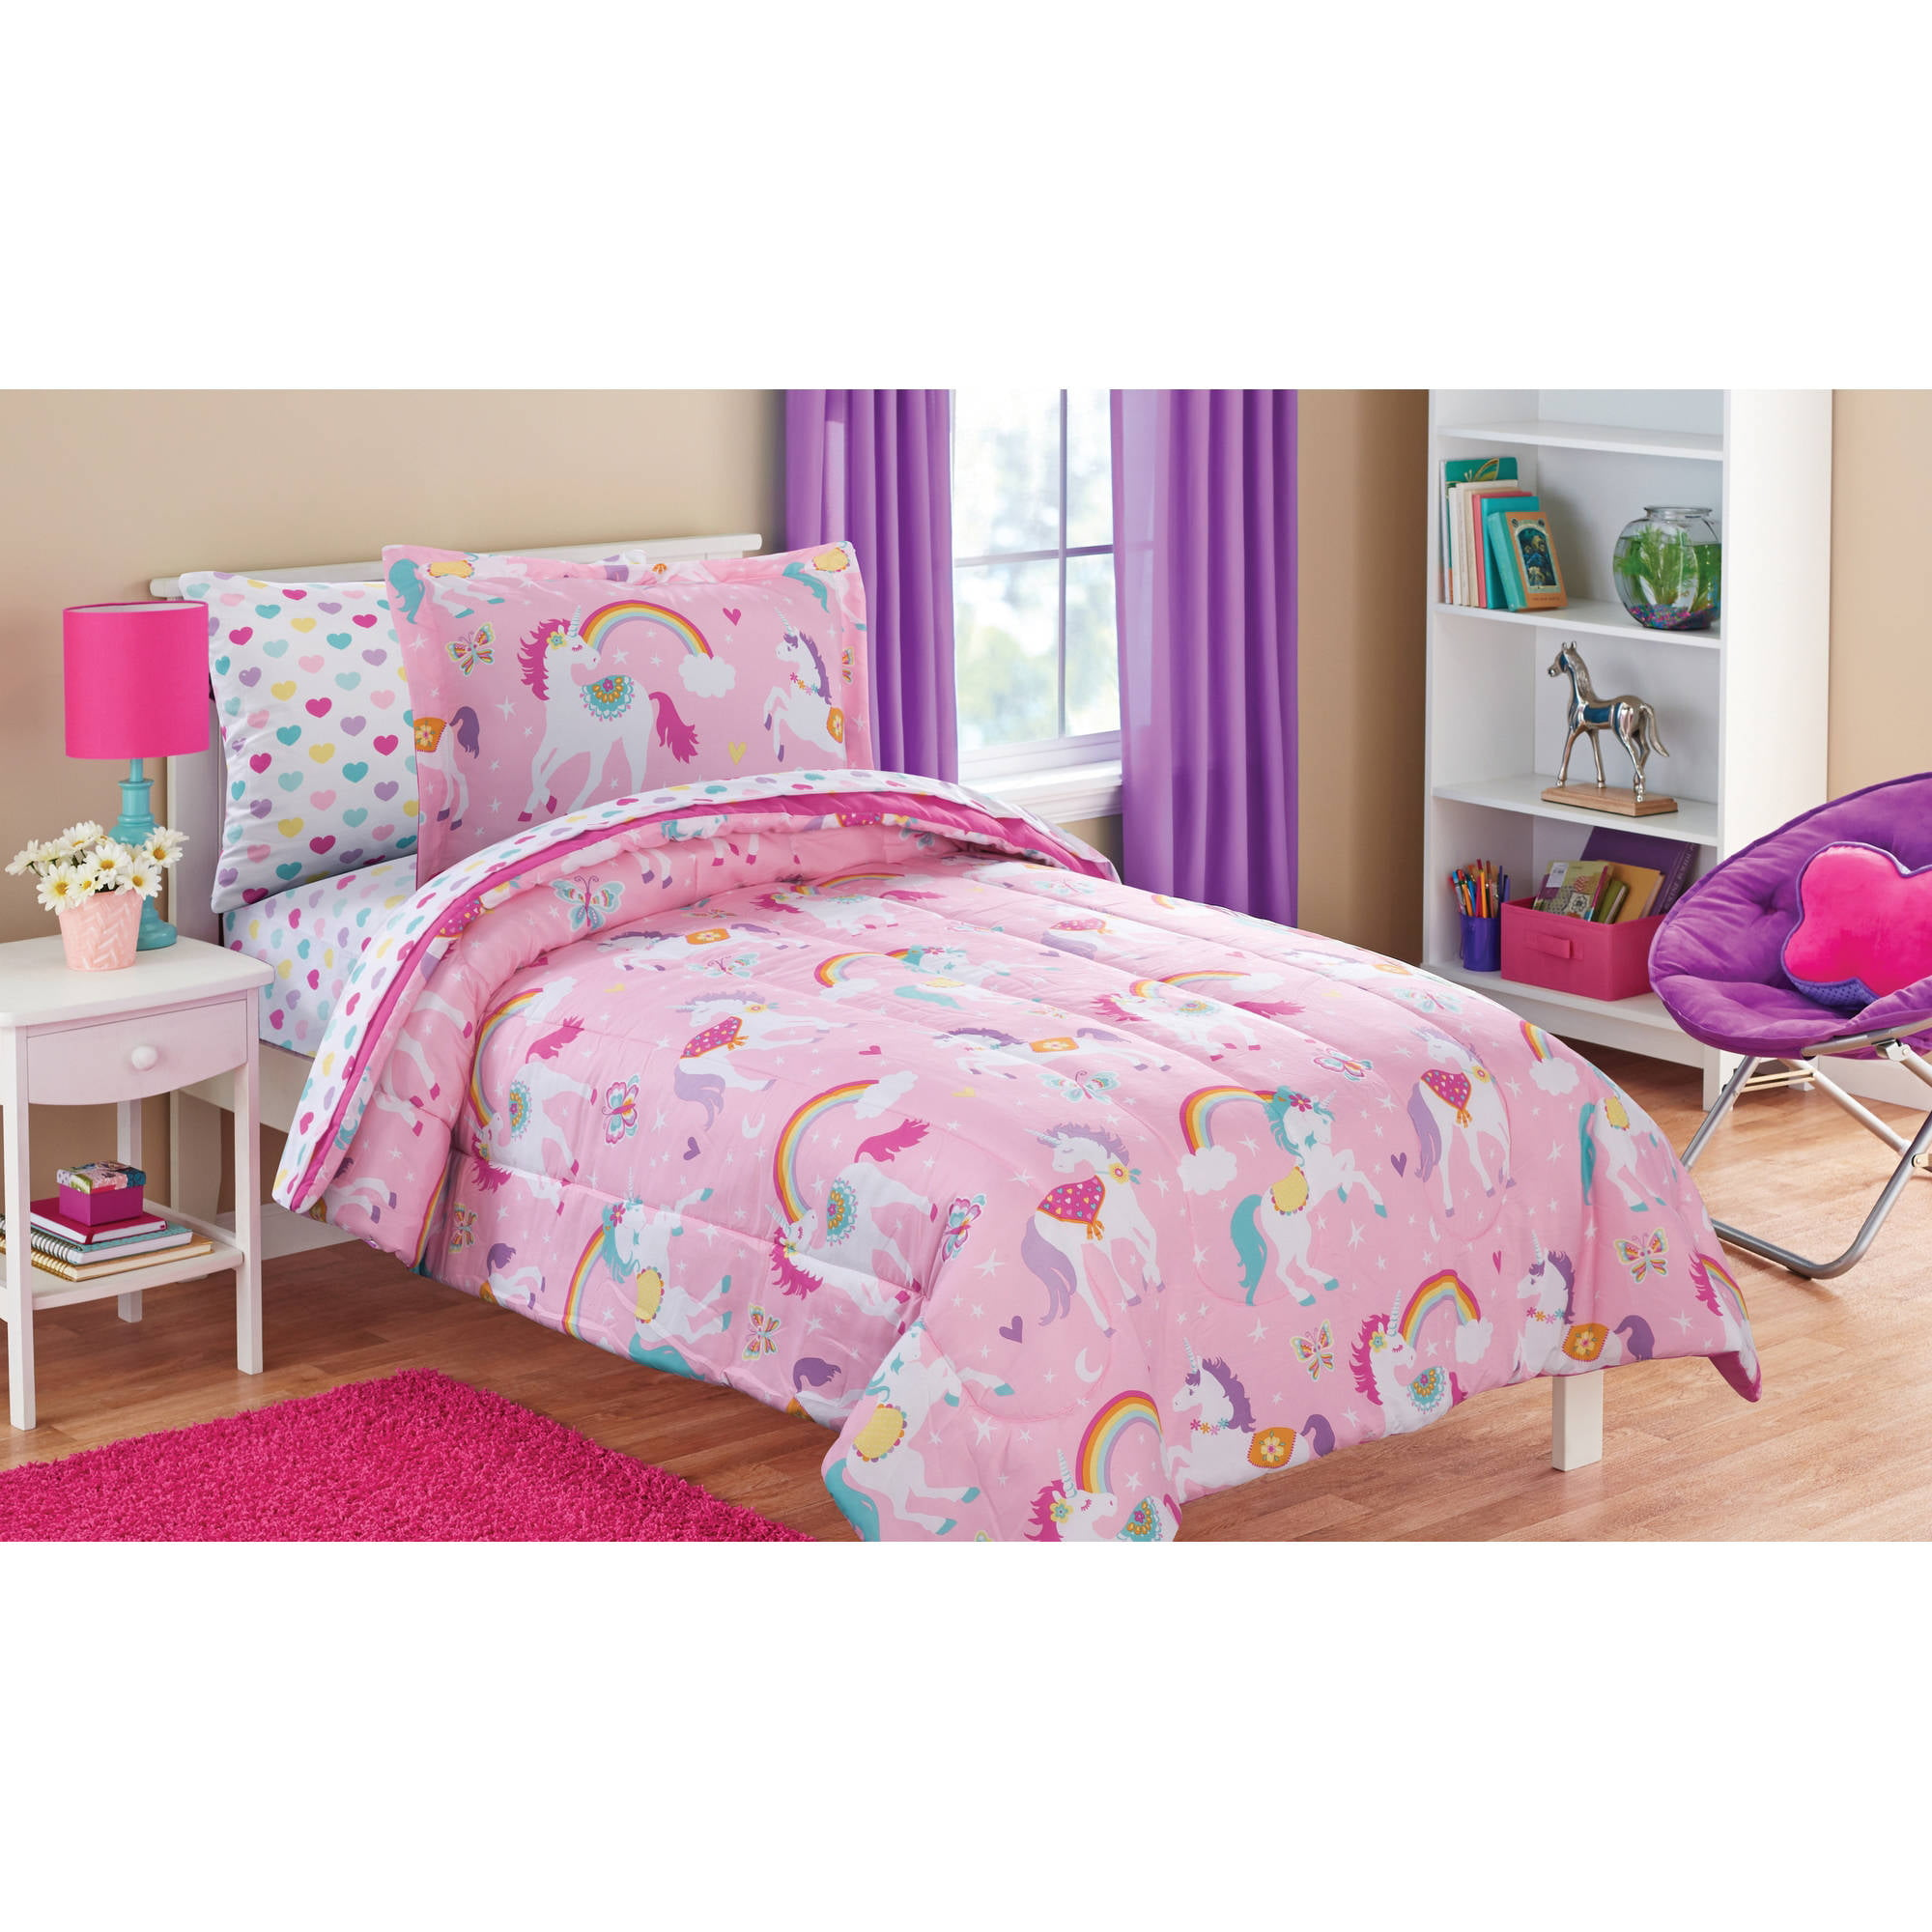 Bedding Sets Components